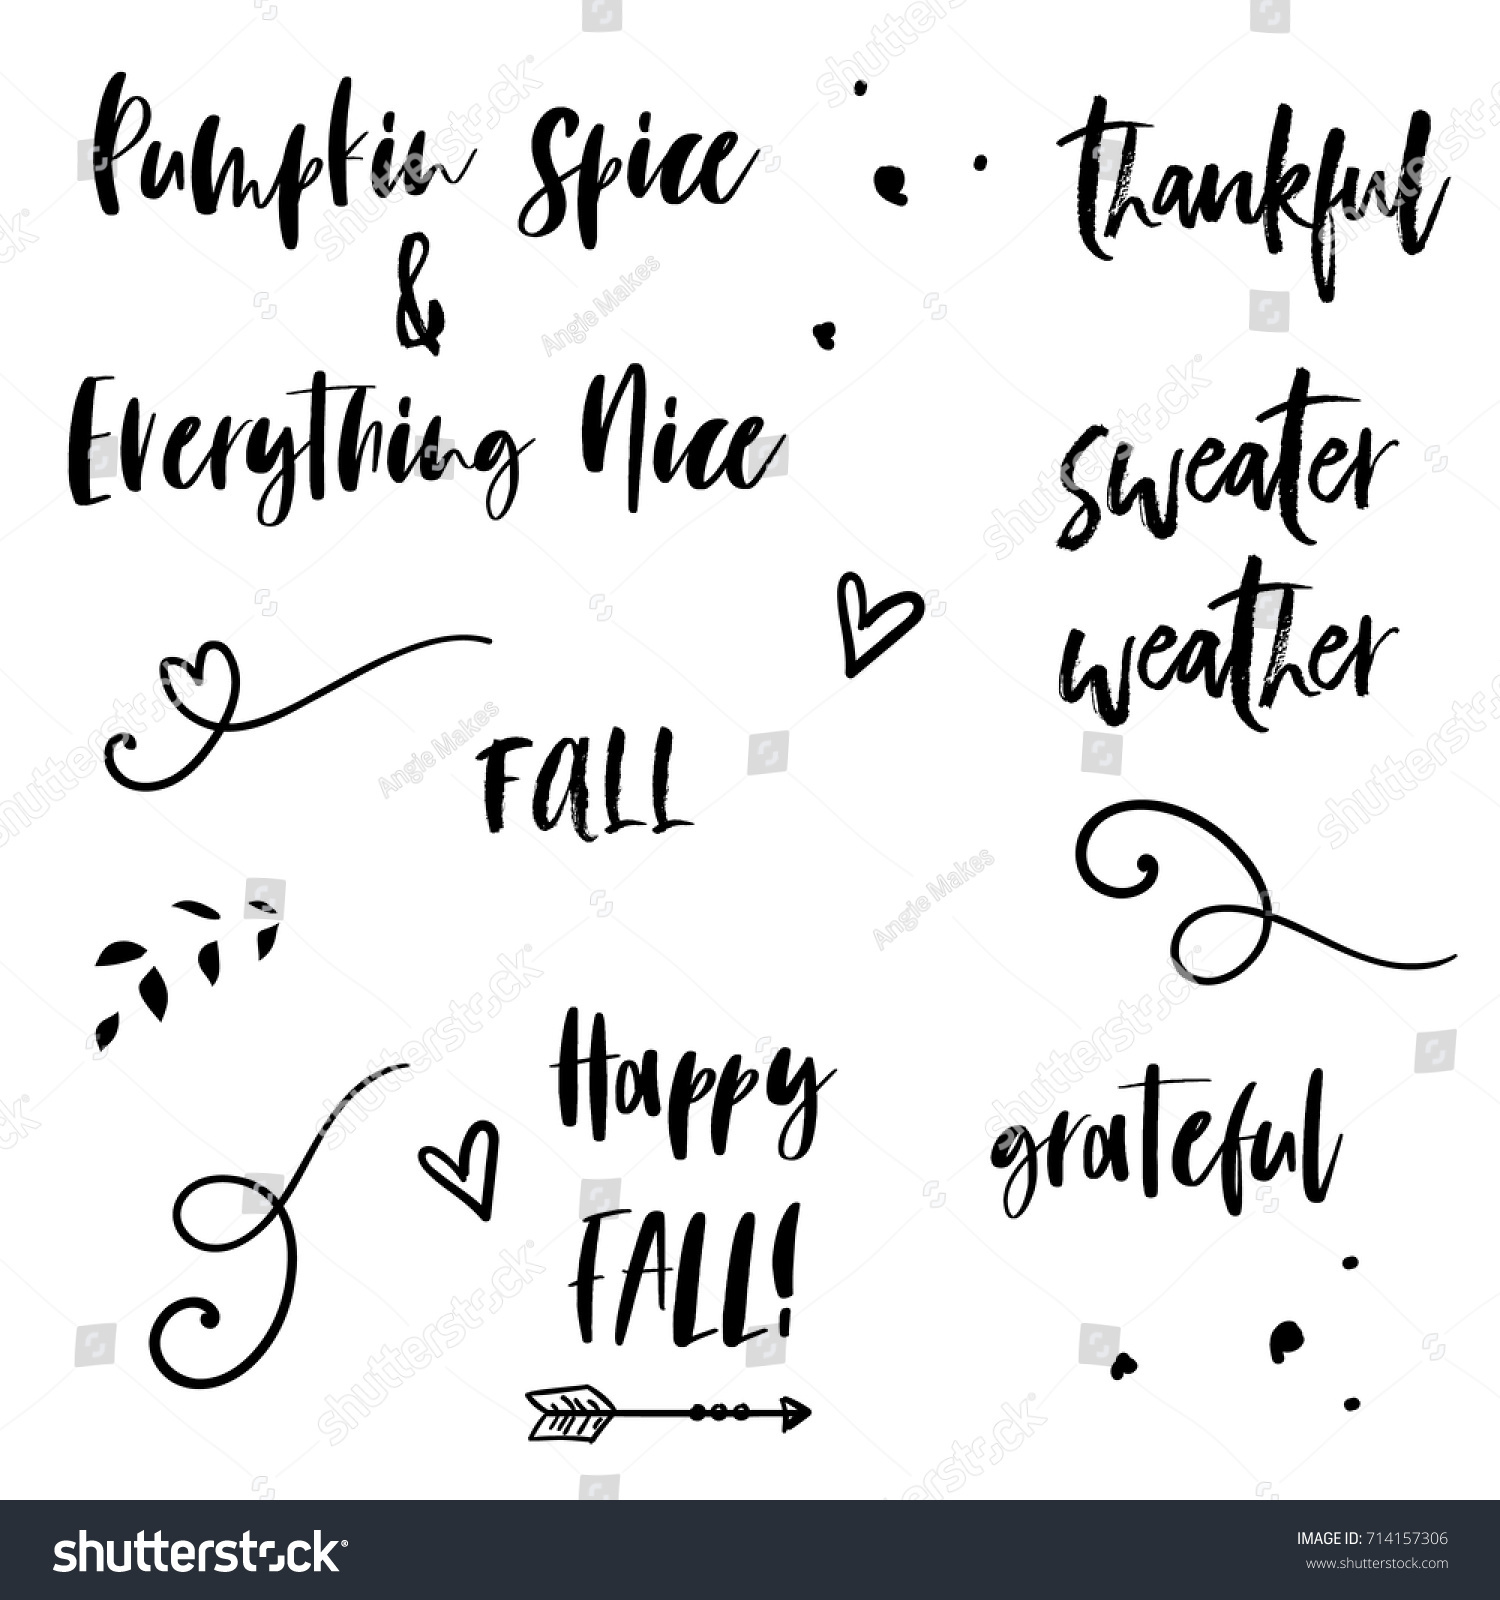 cute fall quotes modern calligraphy stock vector (royalty free